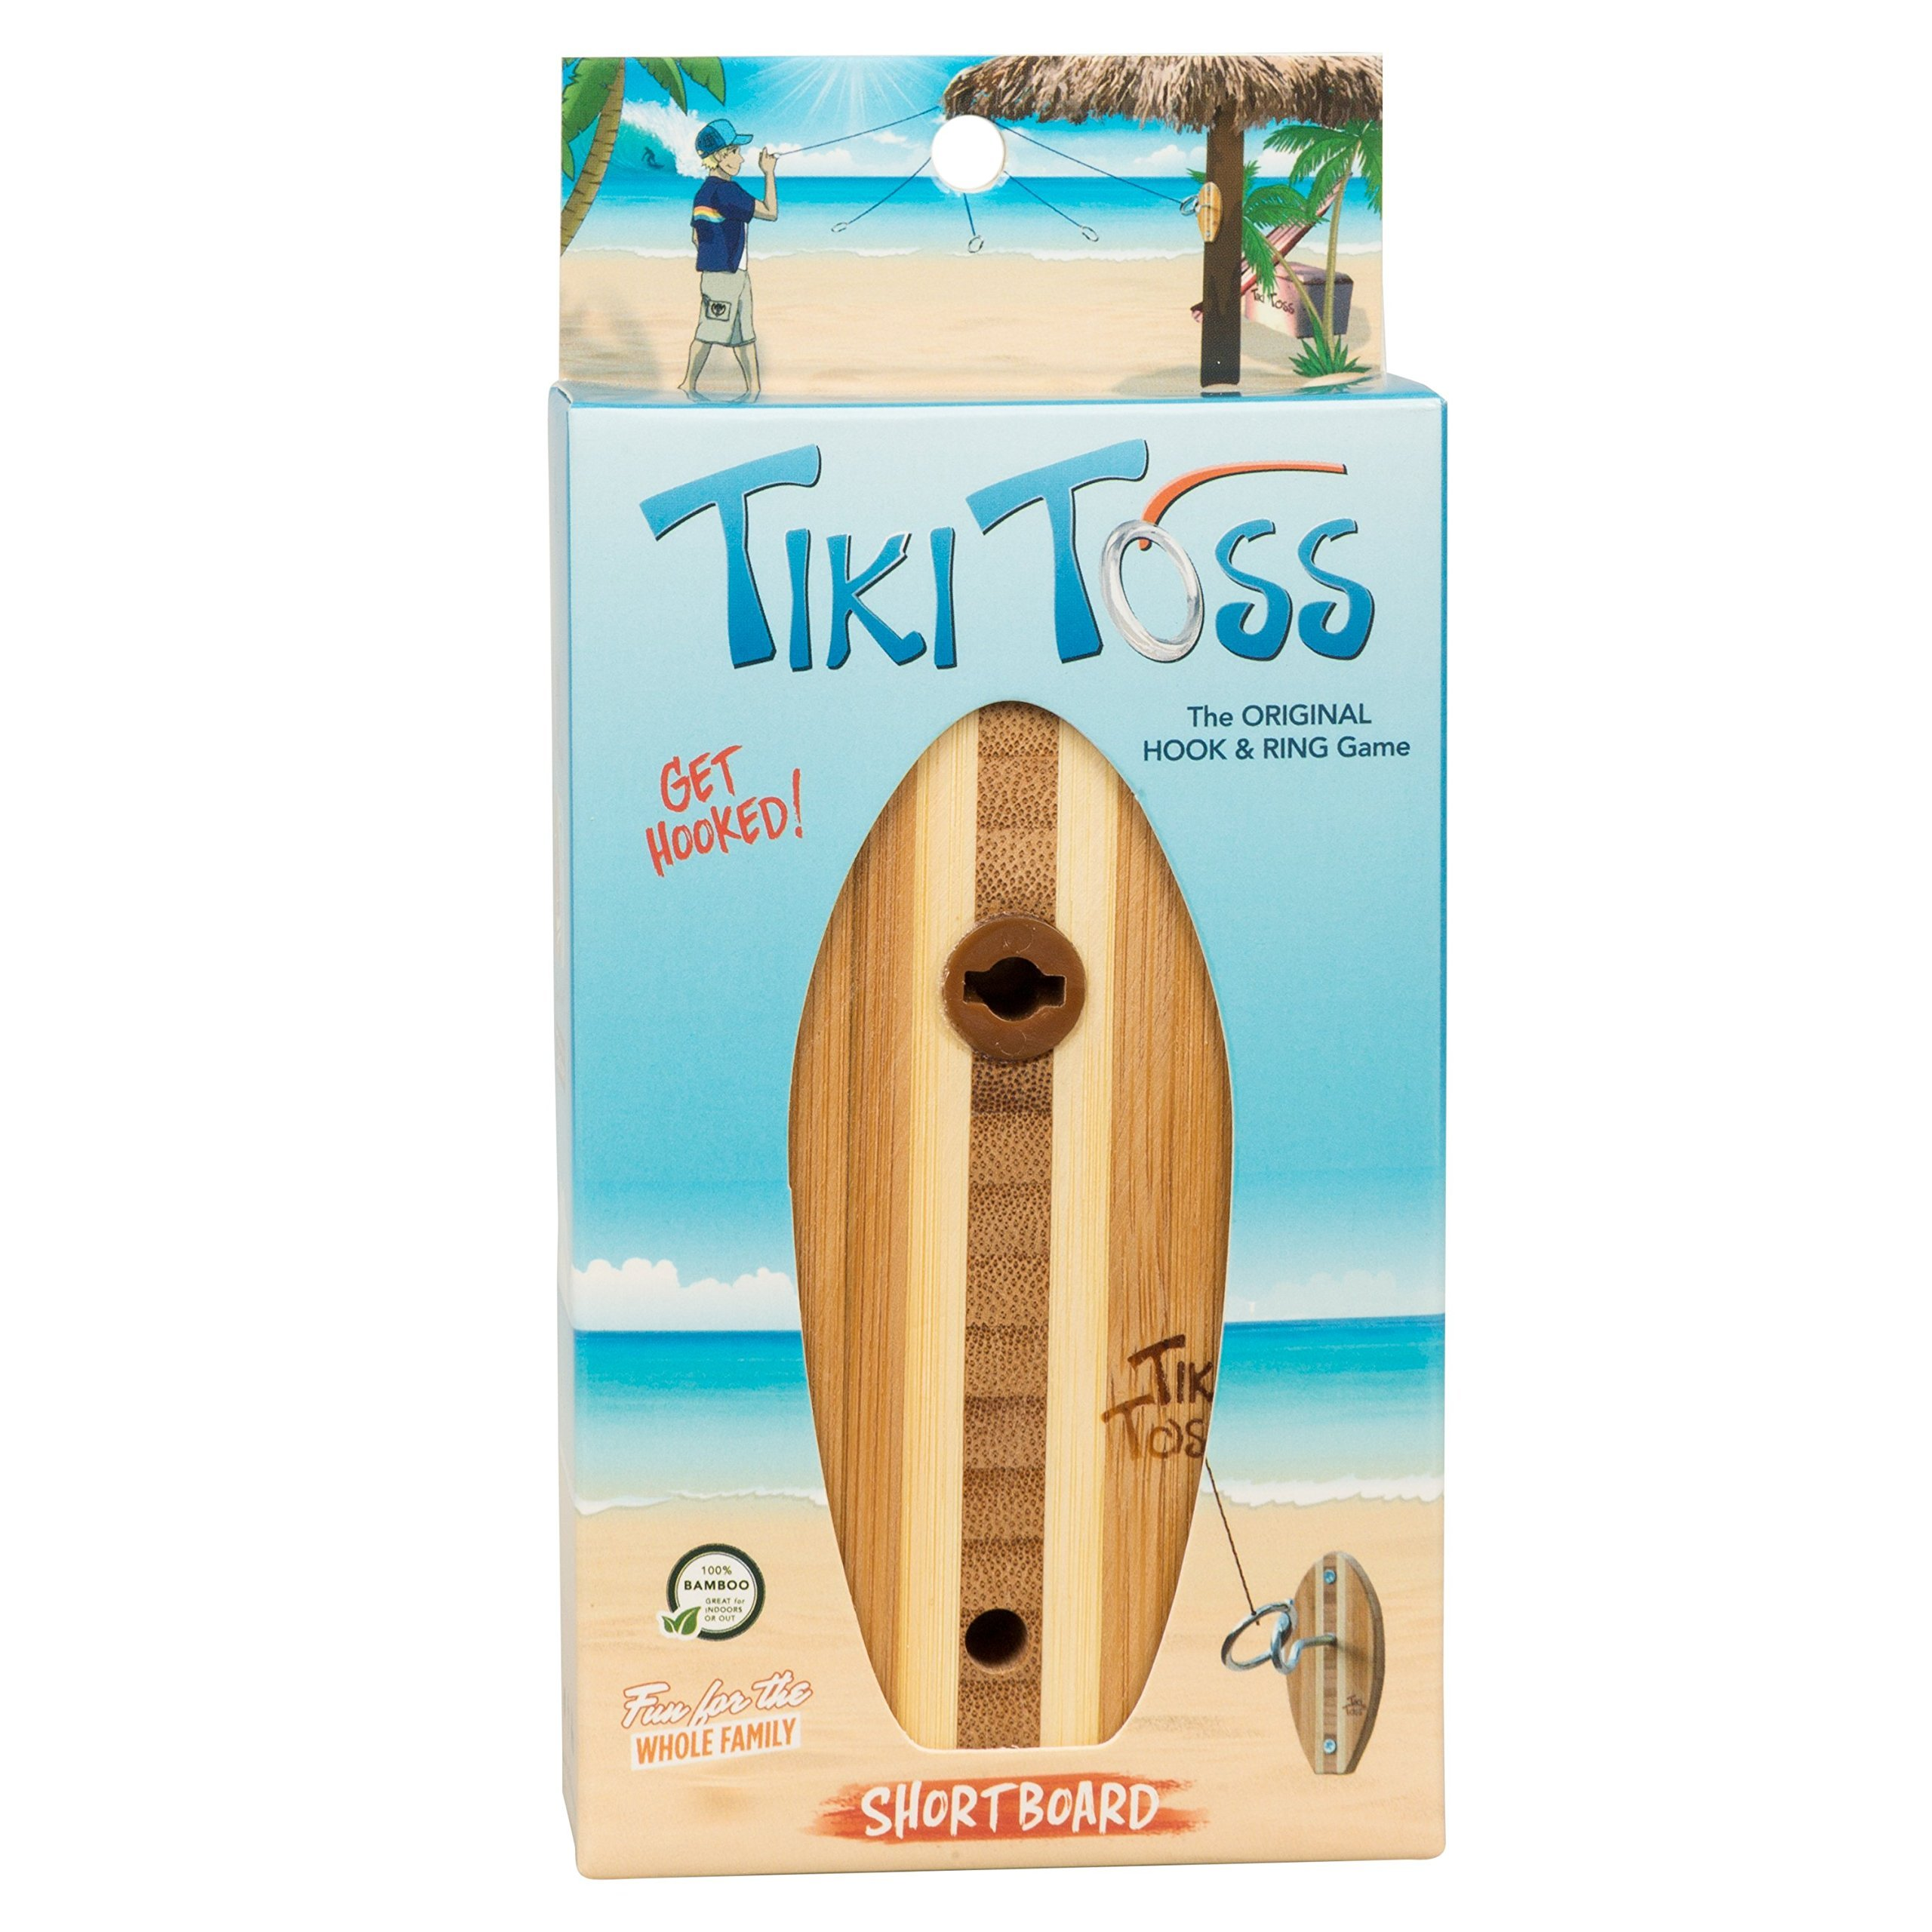 Tiki Toss Shortboard Hook and Ring Toss Game Short Board Edition Indoor Outdoor